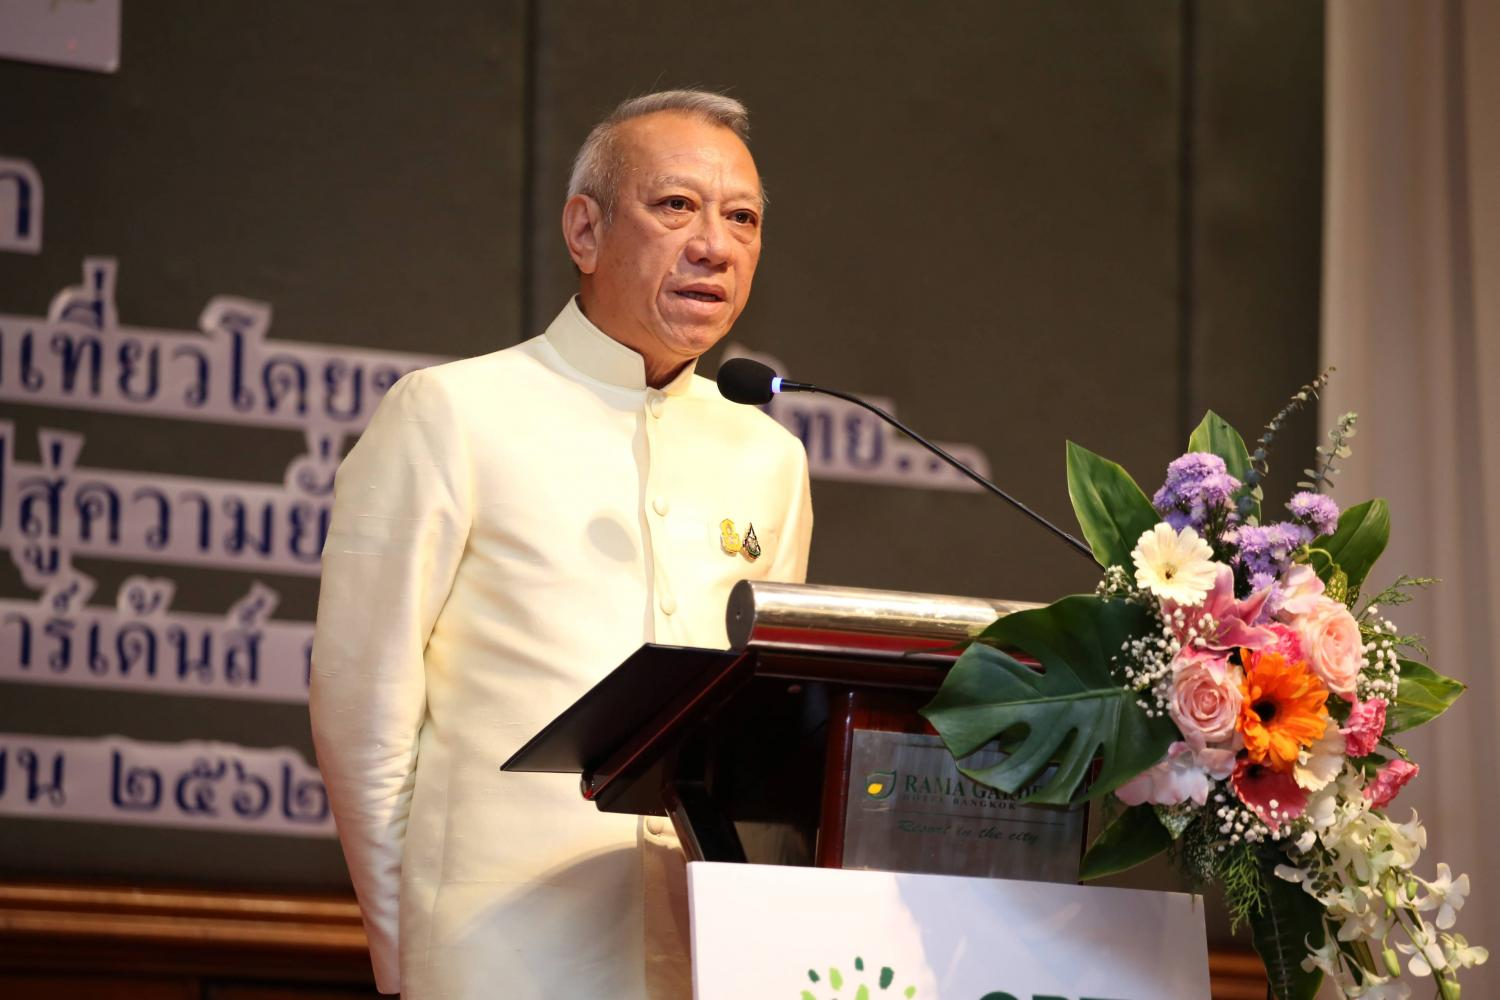 Phiphat Ratchakitprakarn, the Minister of Tourism and Sport